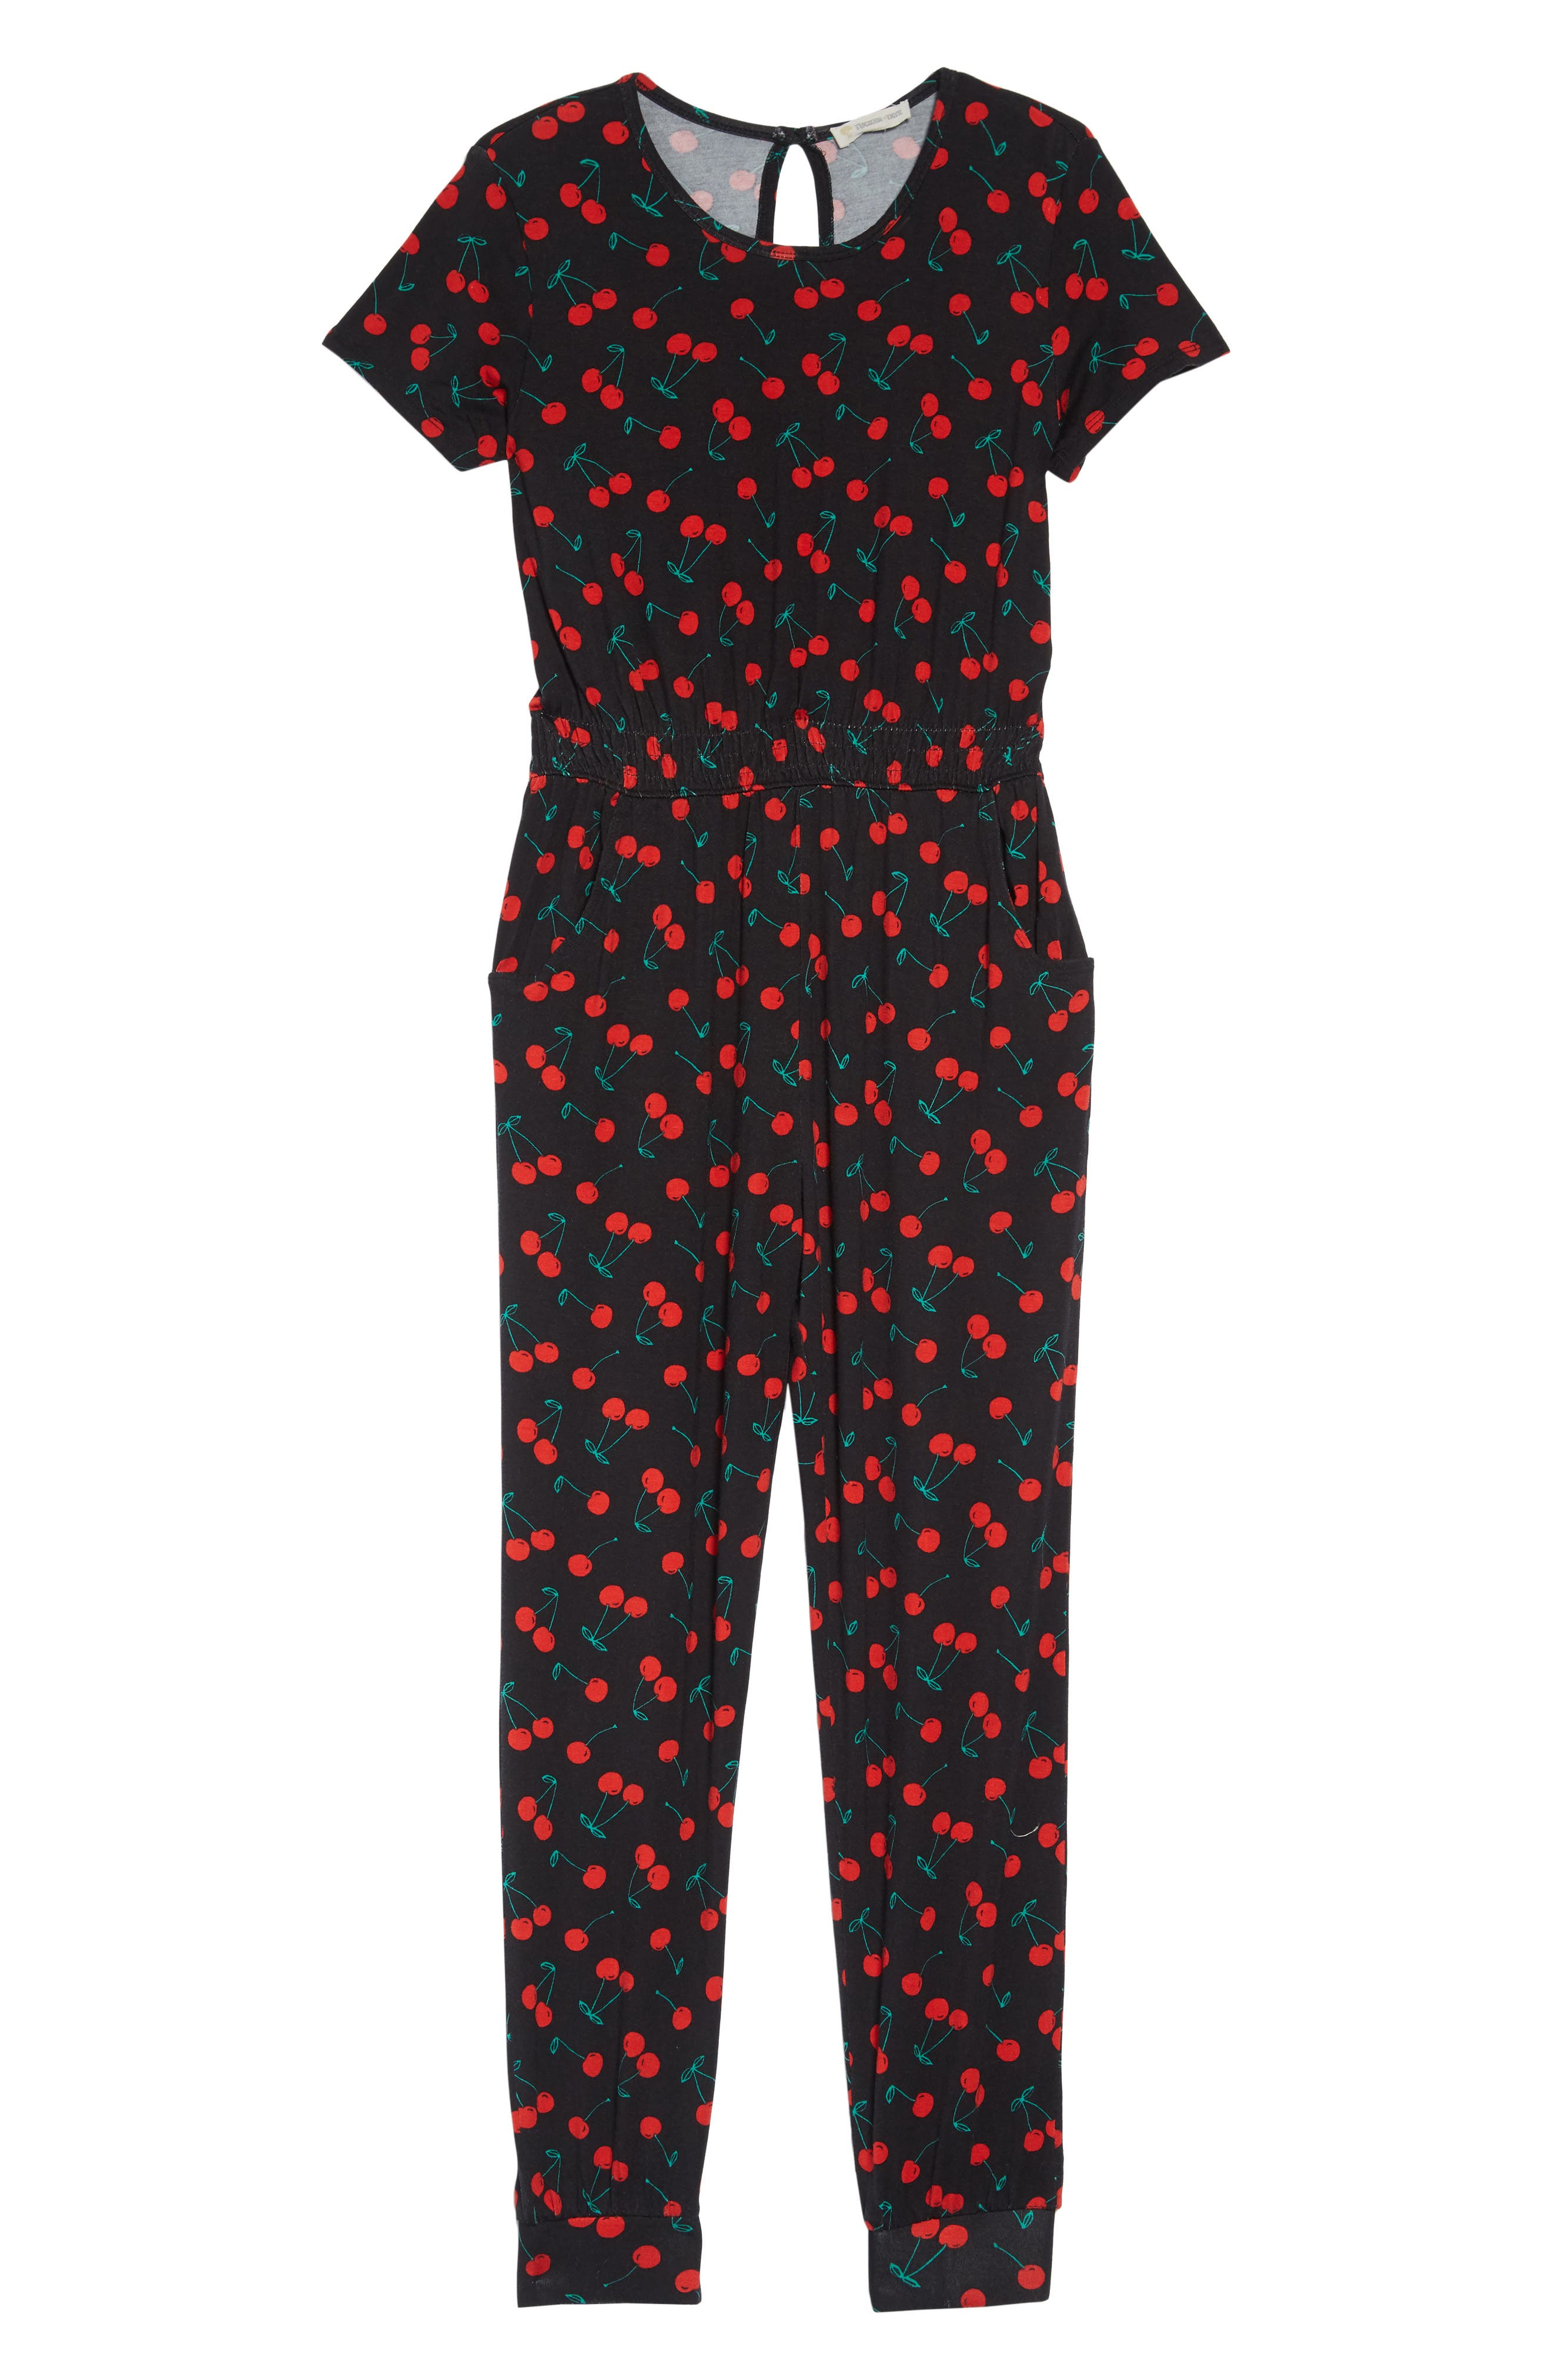 629a29d93e4 Girls  Rompers   Jumpsuits Tucker and Tate